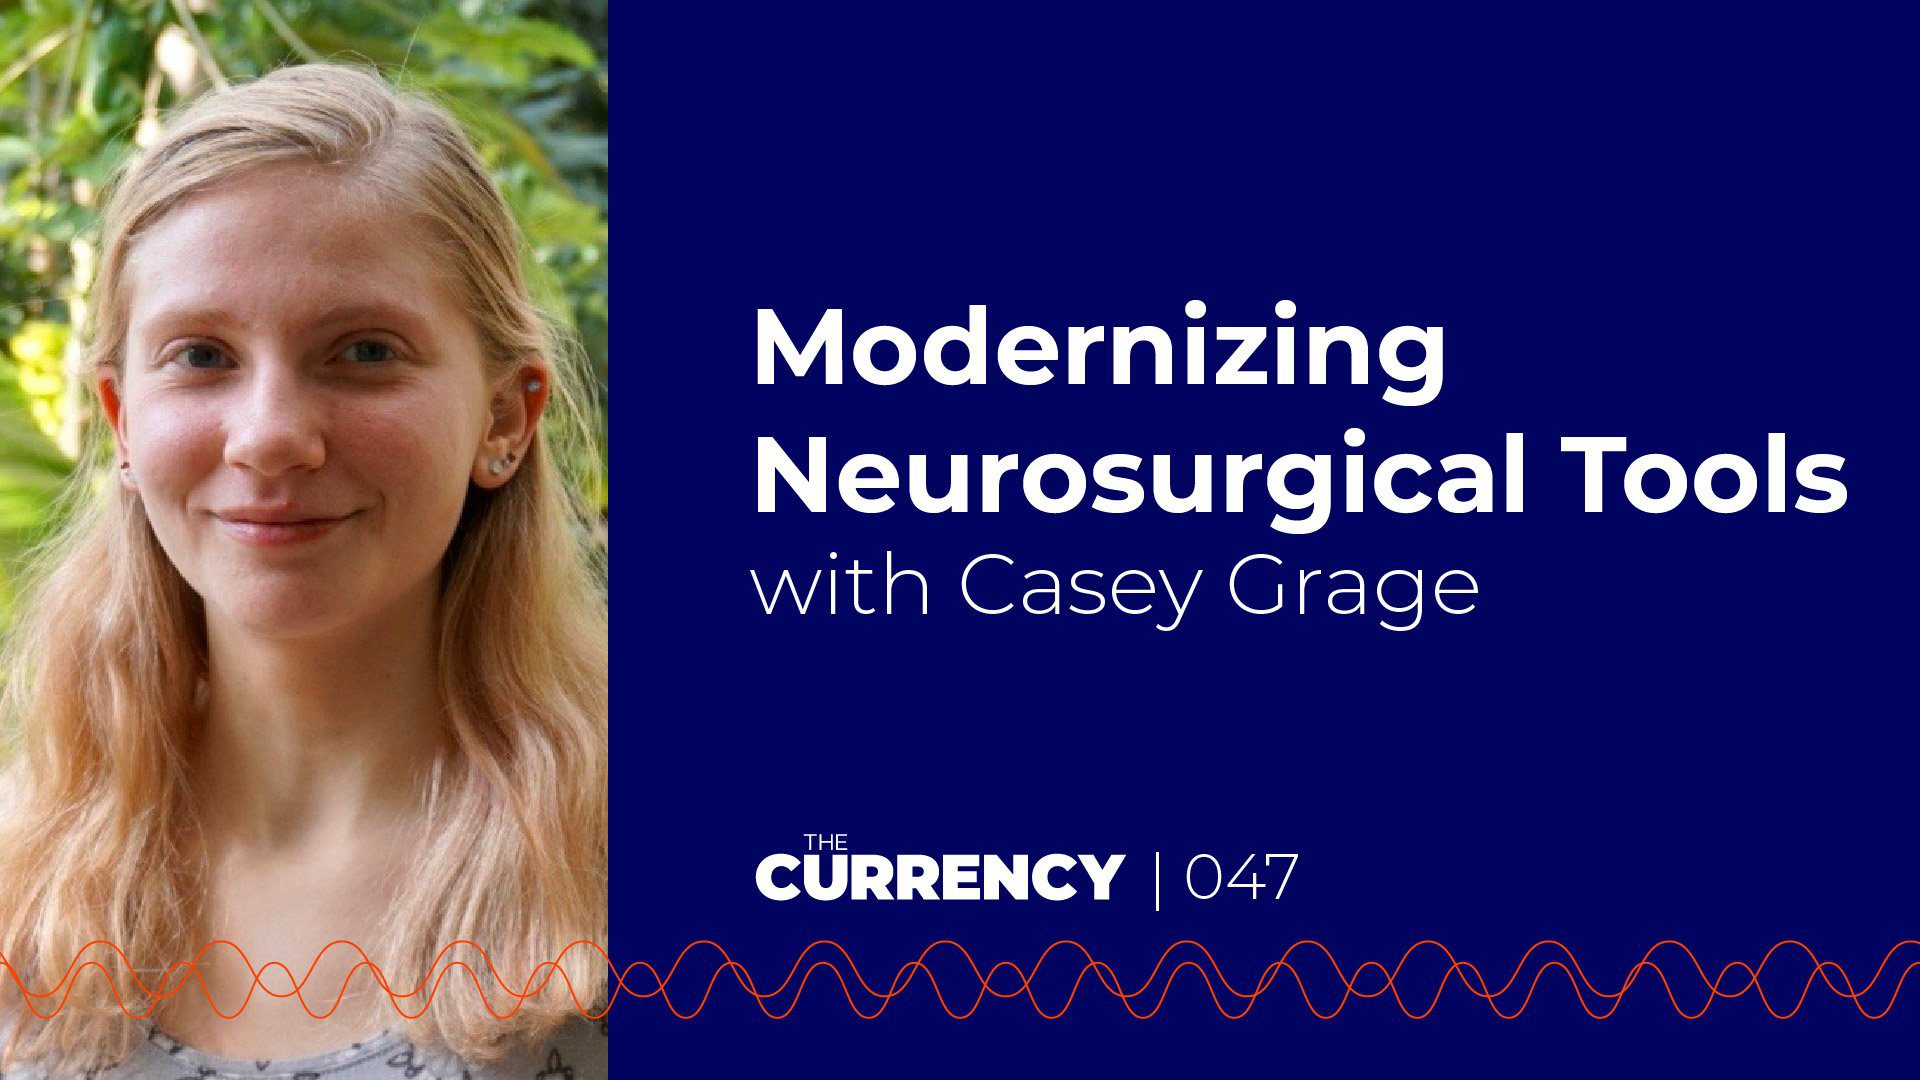 The Currency: [047] Modernizing Neurosurgical Tools with Casey Grage